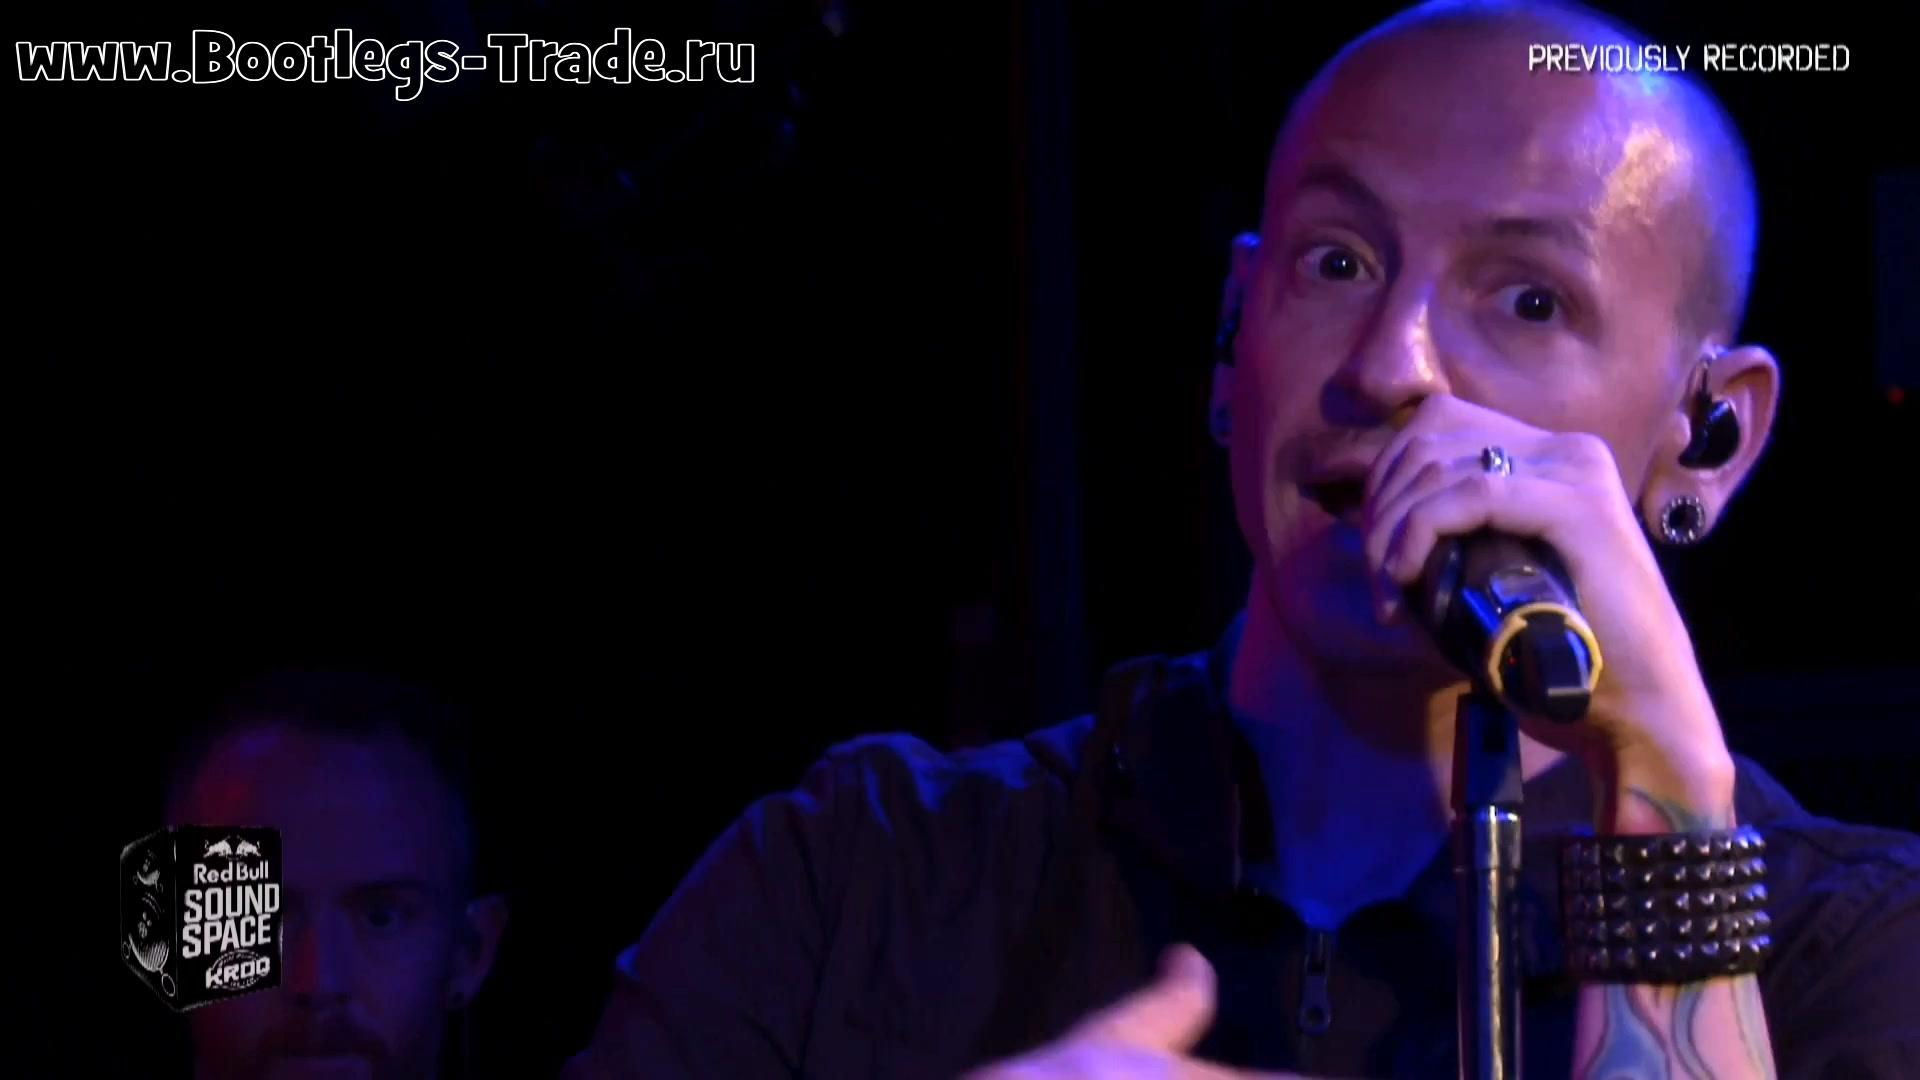 Linkin Park 2014-06-17 Red Bull Sound Space, Los Angeles, CA, USA (Webcast HD 1080)